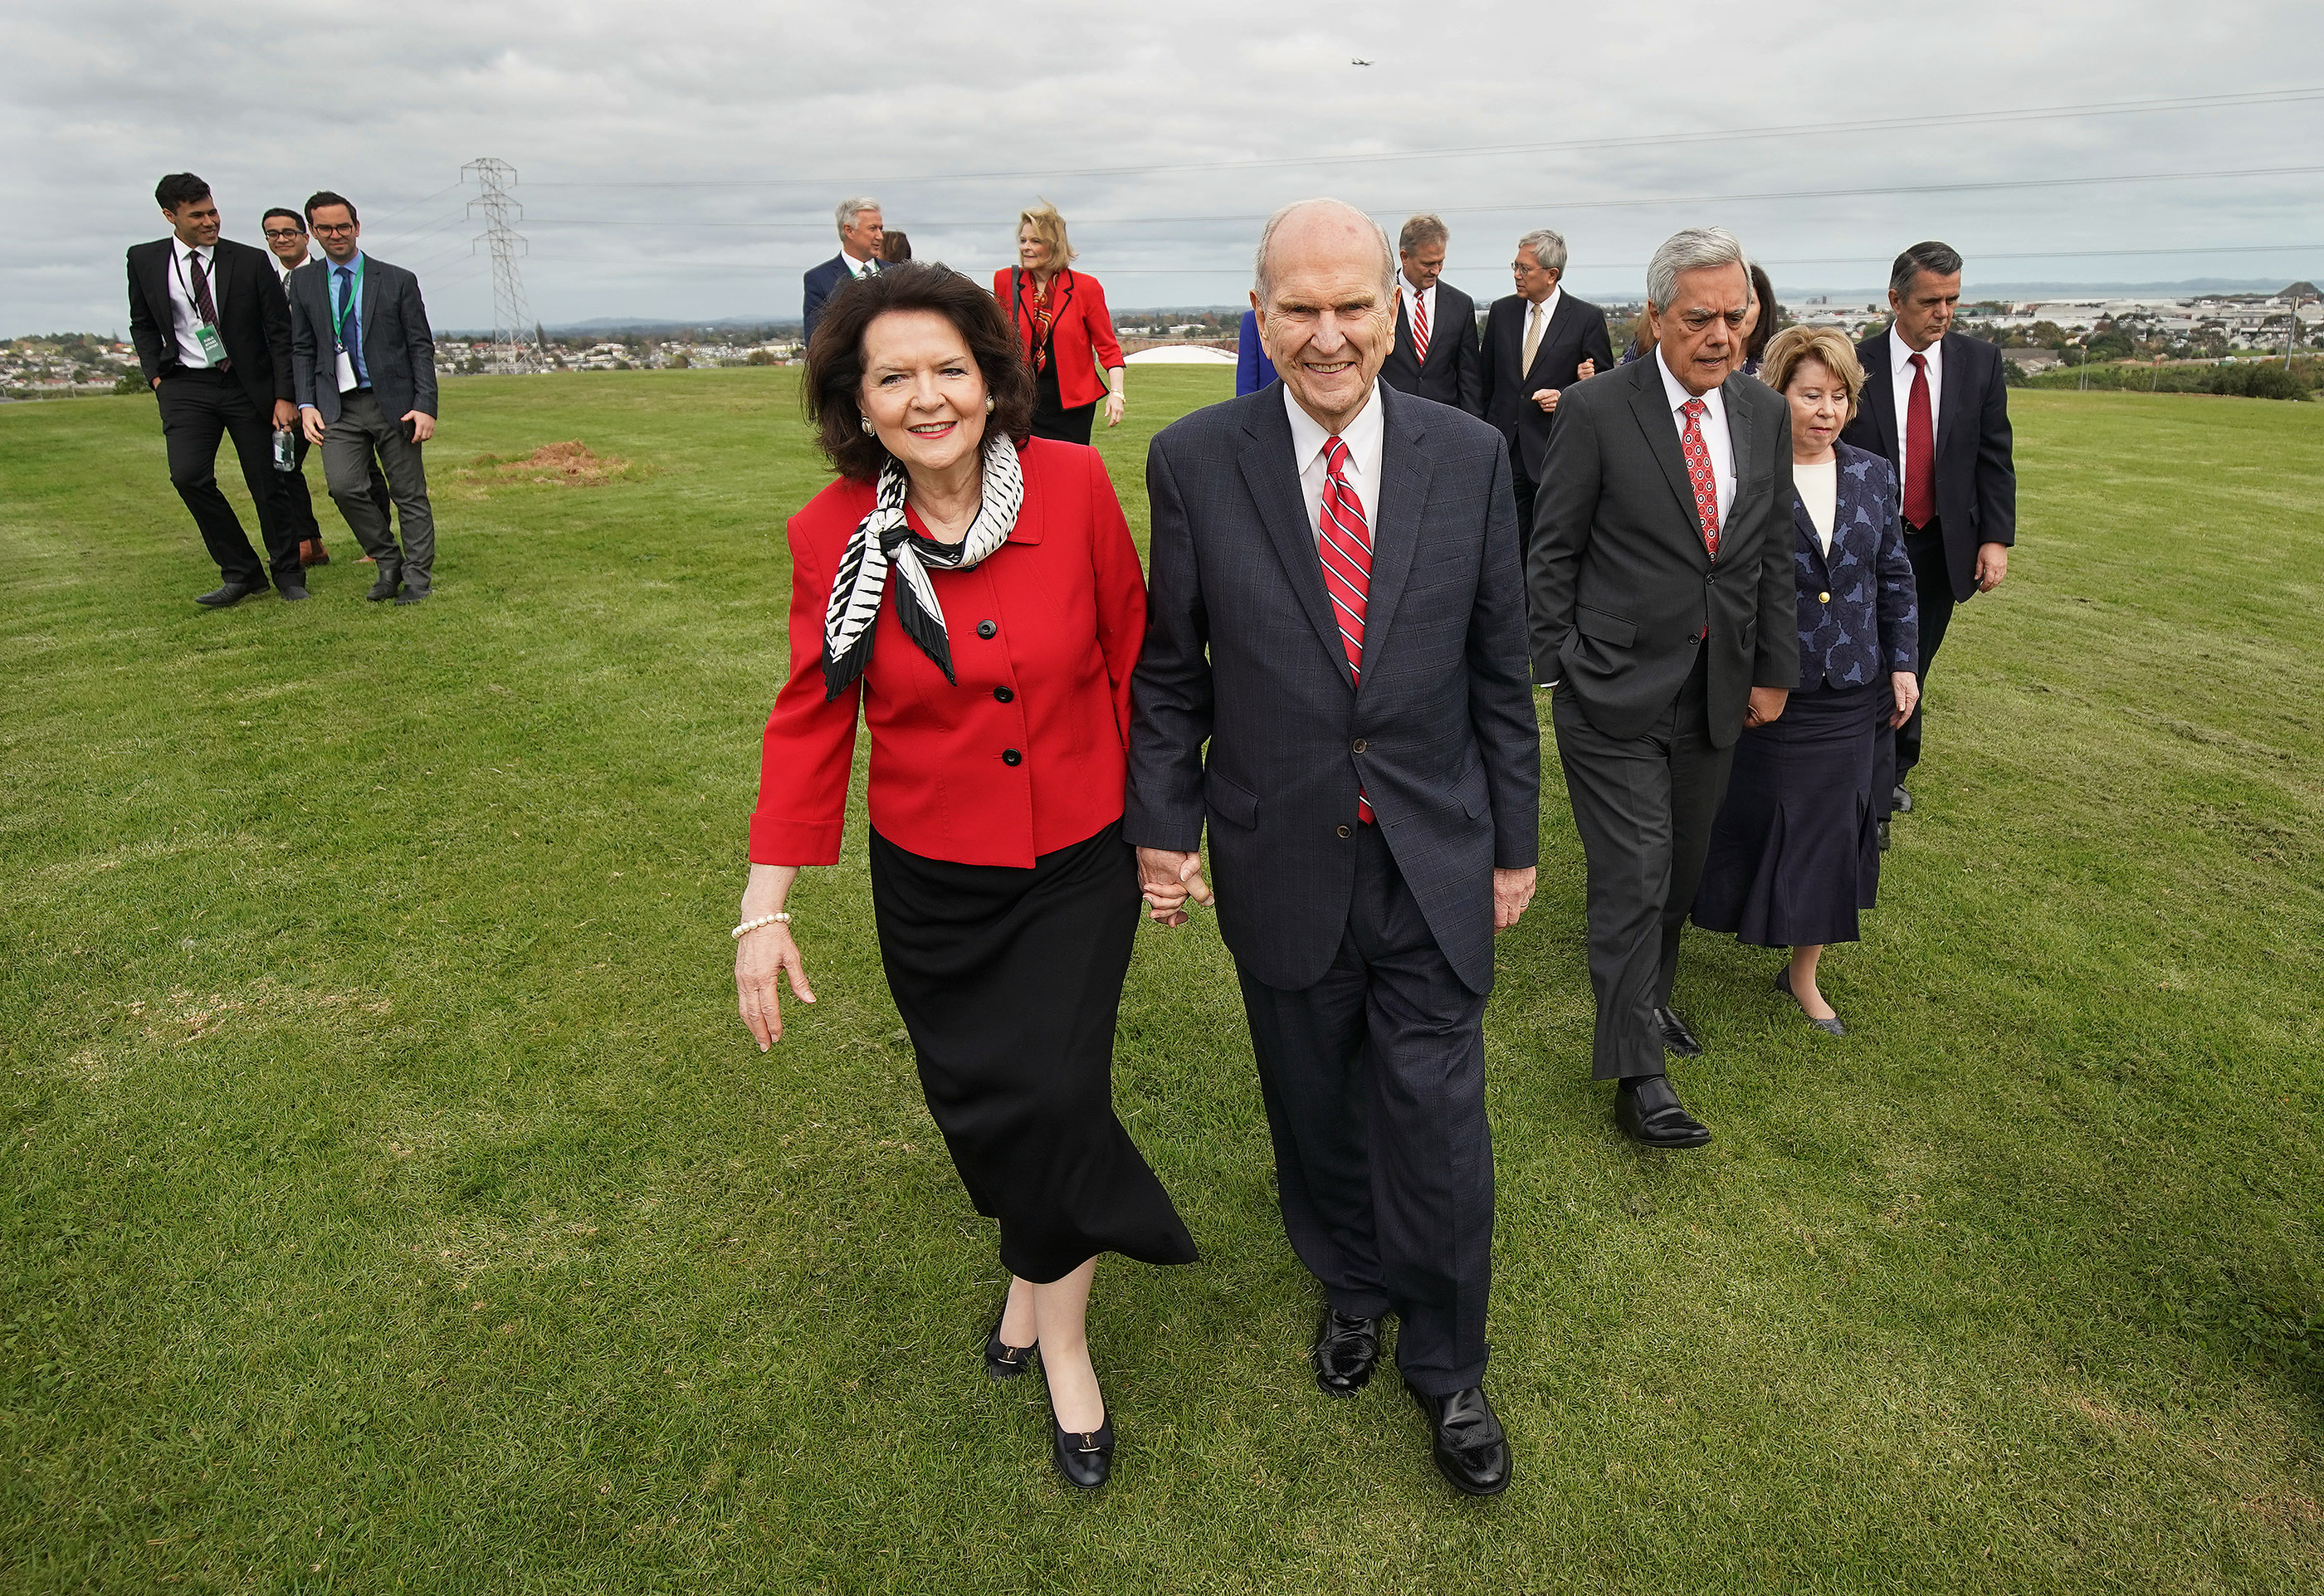 President Russell M. Nelson of The Church of Jesus Christ of Latter-day Saints and his wife, Sister Wendy Nelson, walk on ground for the new temple in Auckland, New Zealand, on May 21, 2019.